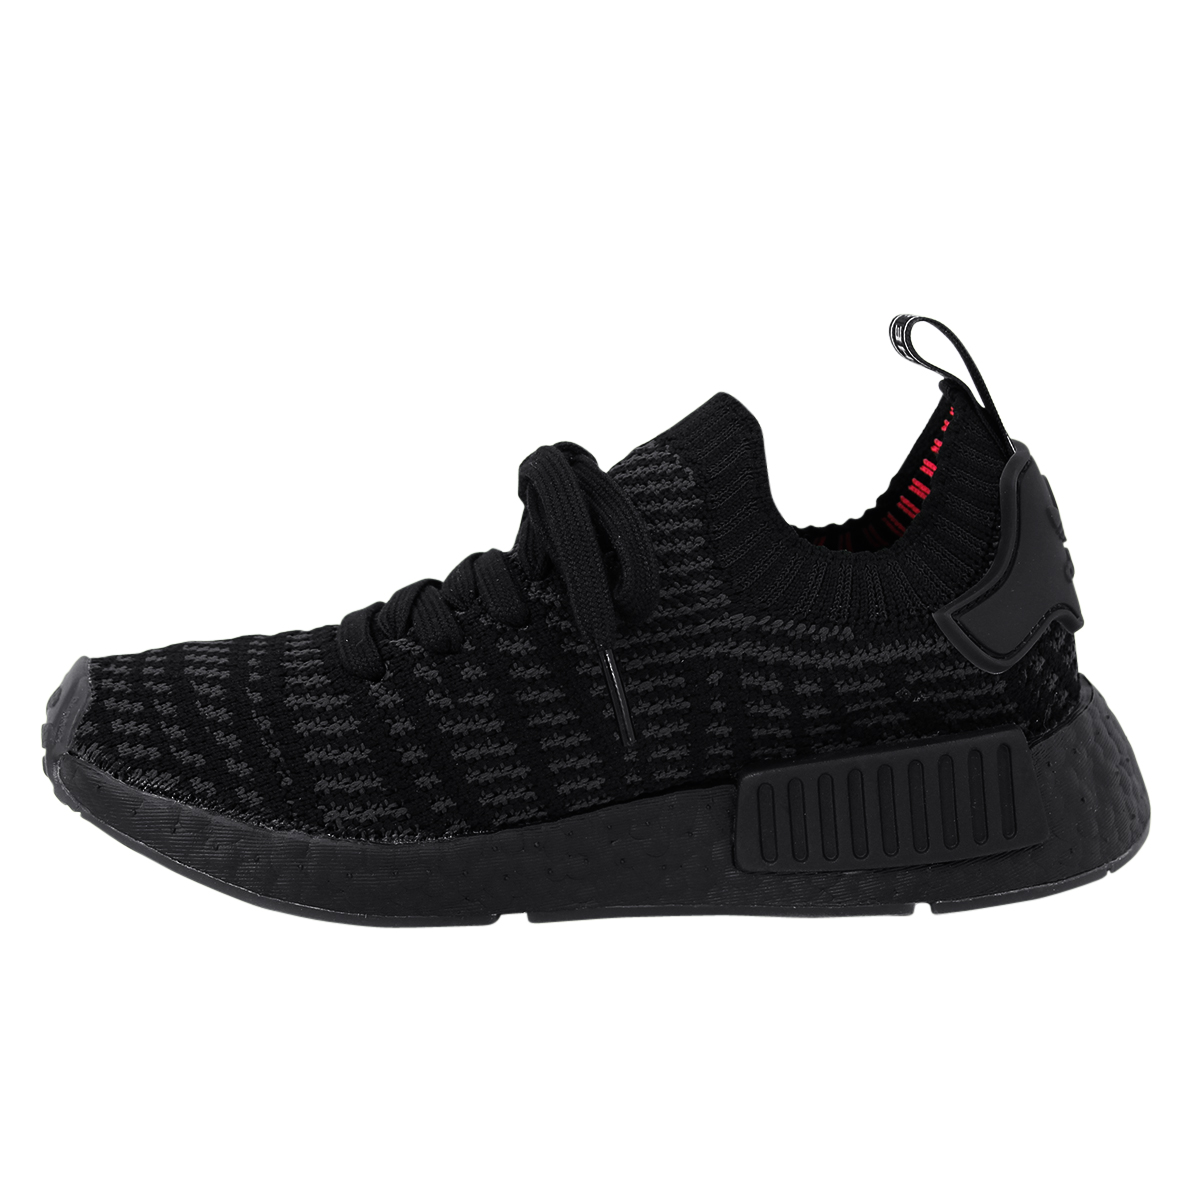 Adidas NMD R1 STLT Primeknit Mens Sneakers Shoes New | eBay